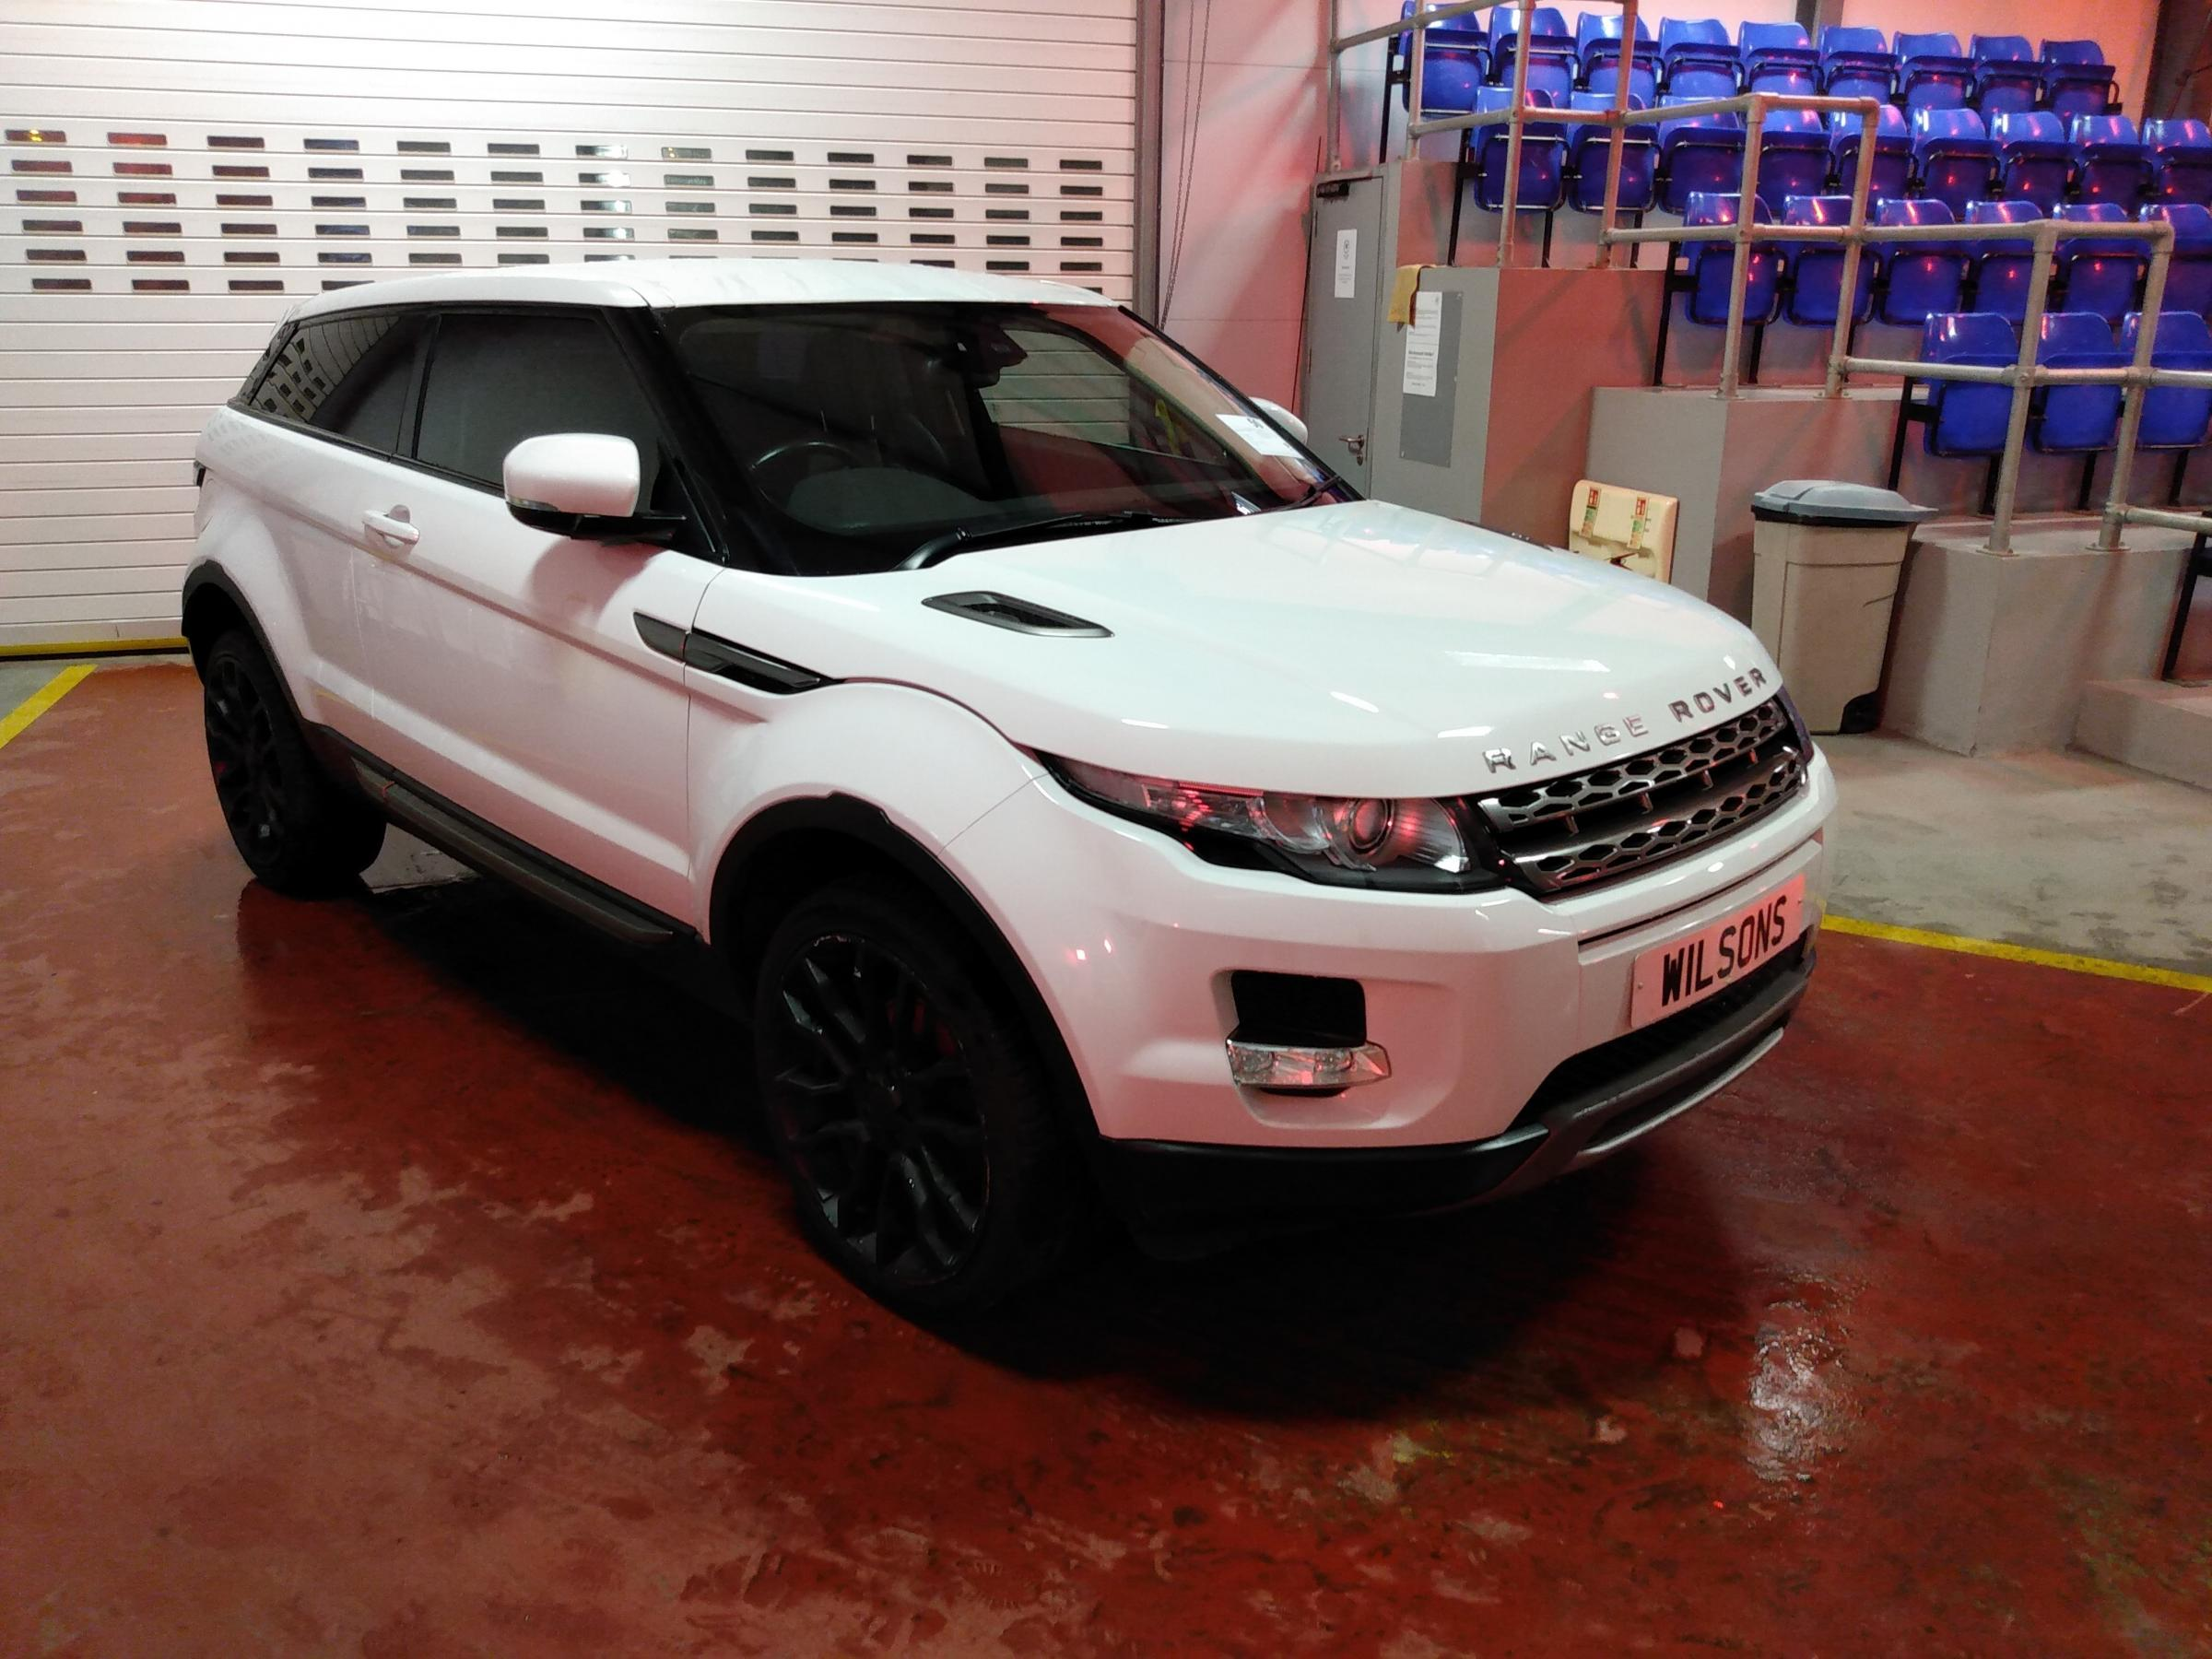 Range Rover, a house in Croatia and Rolex watches on sale in government sale at Wilson's Auctions in Newport